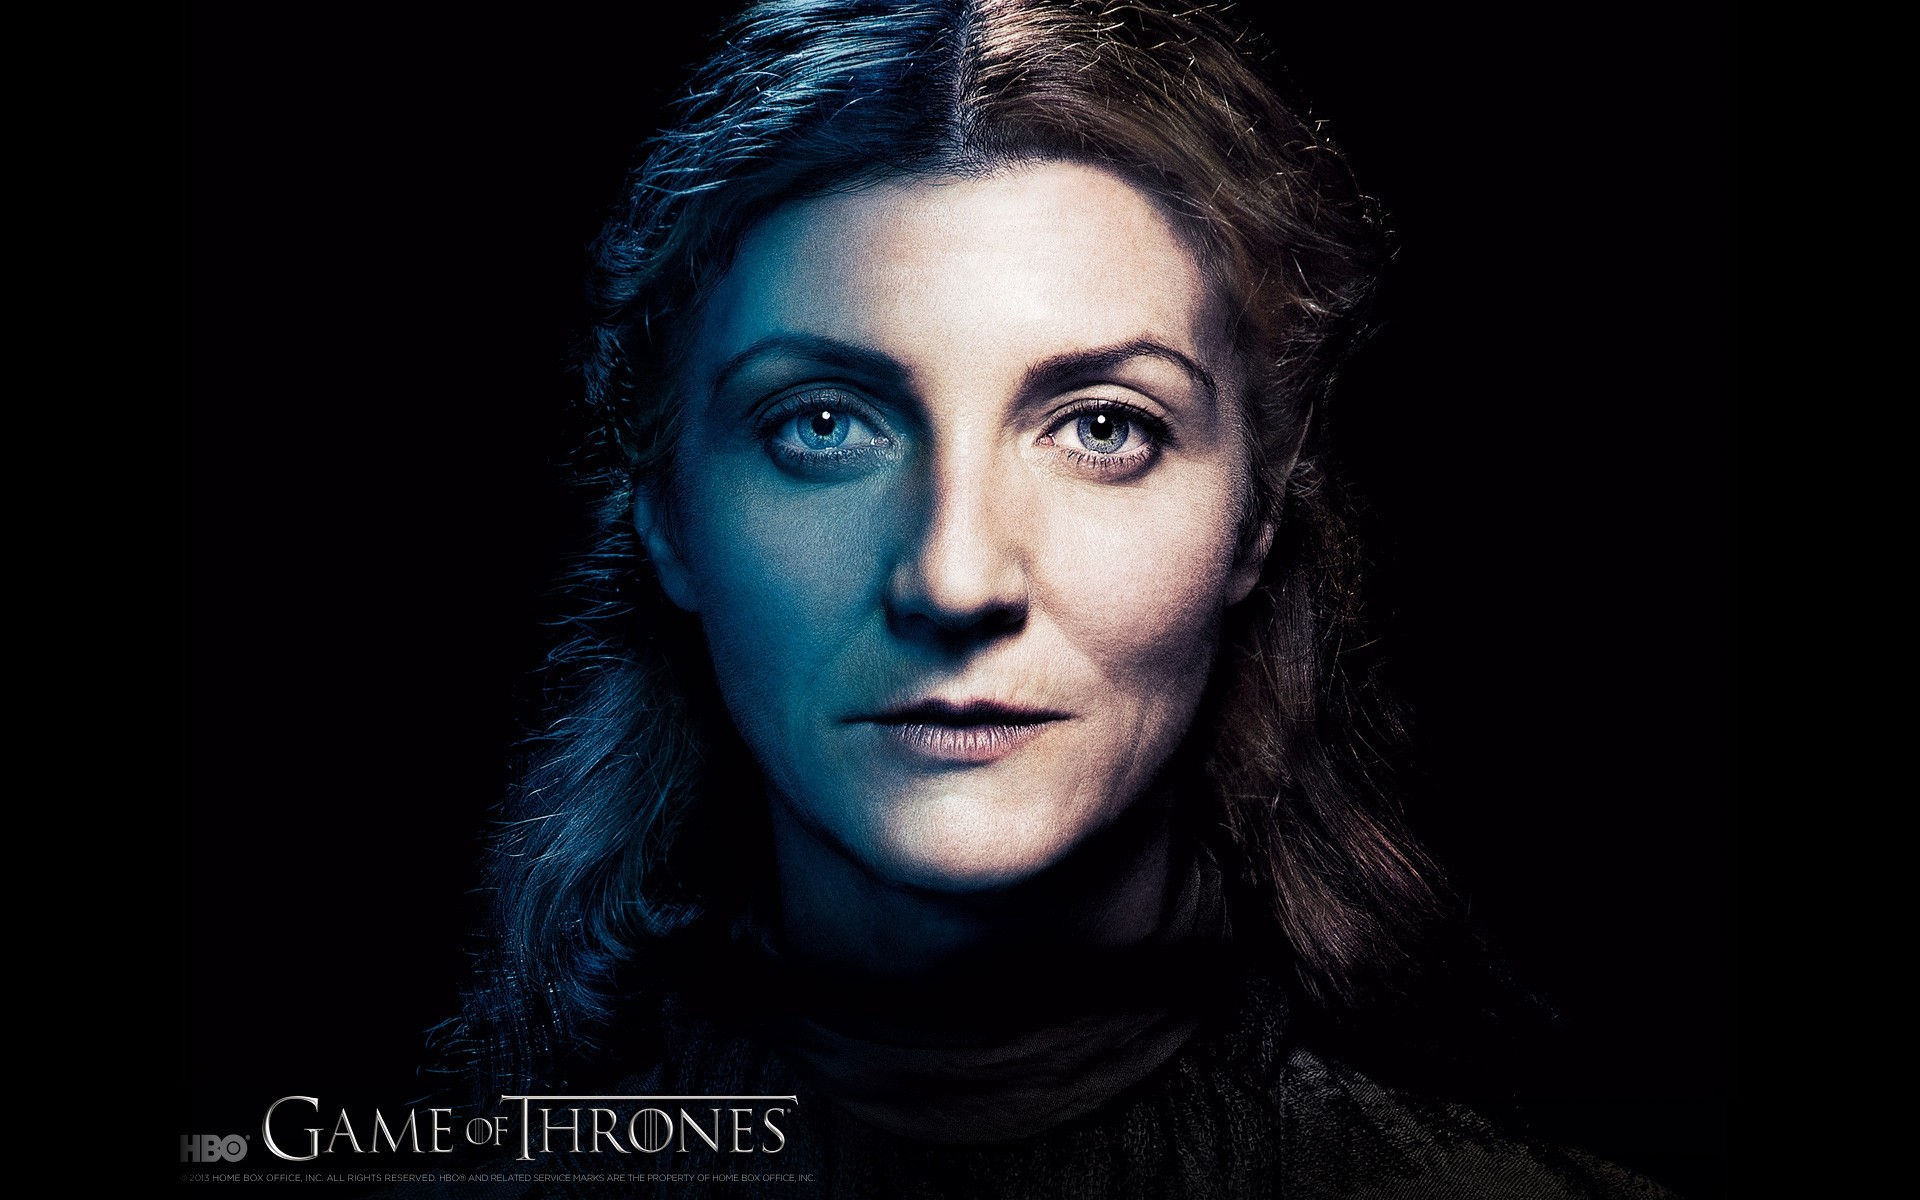 Catelyn резко в игре престолов